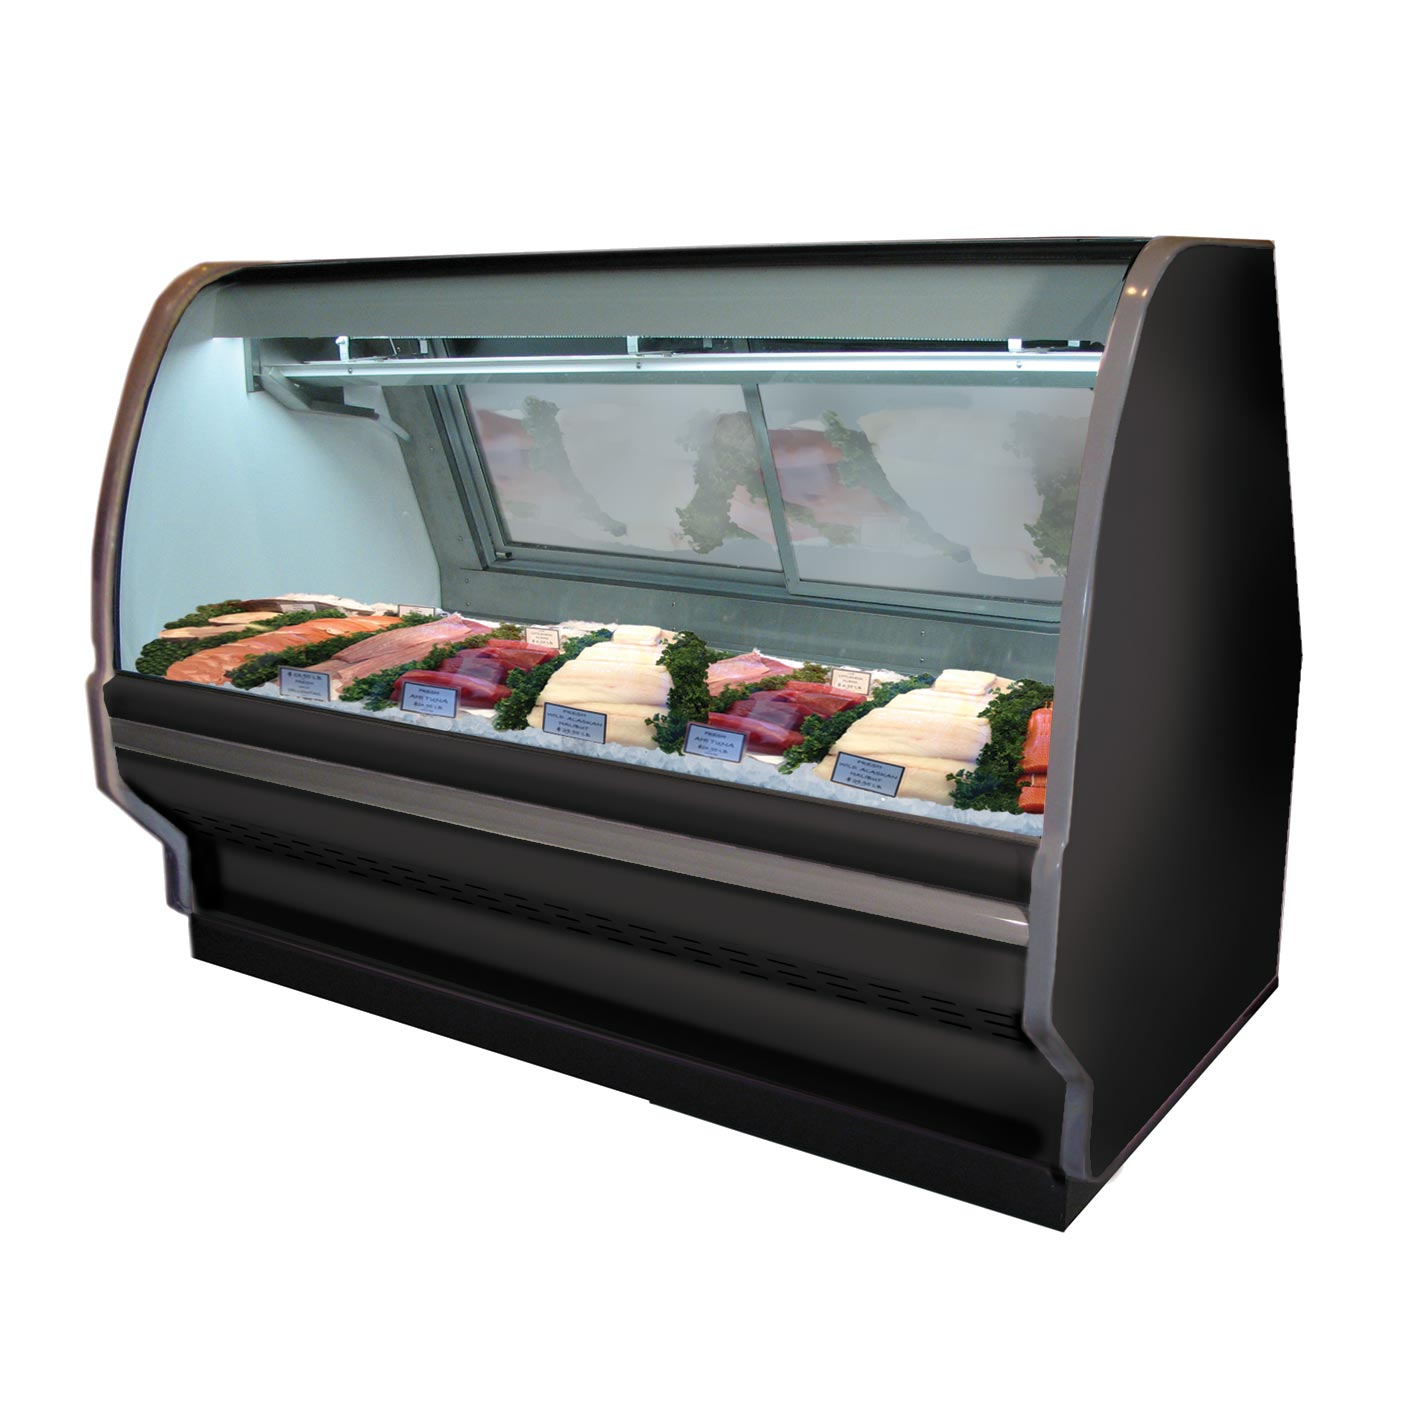 Howard-McCray R-CFS40E-8-LED display case, deli seafood / poultry